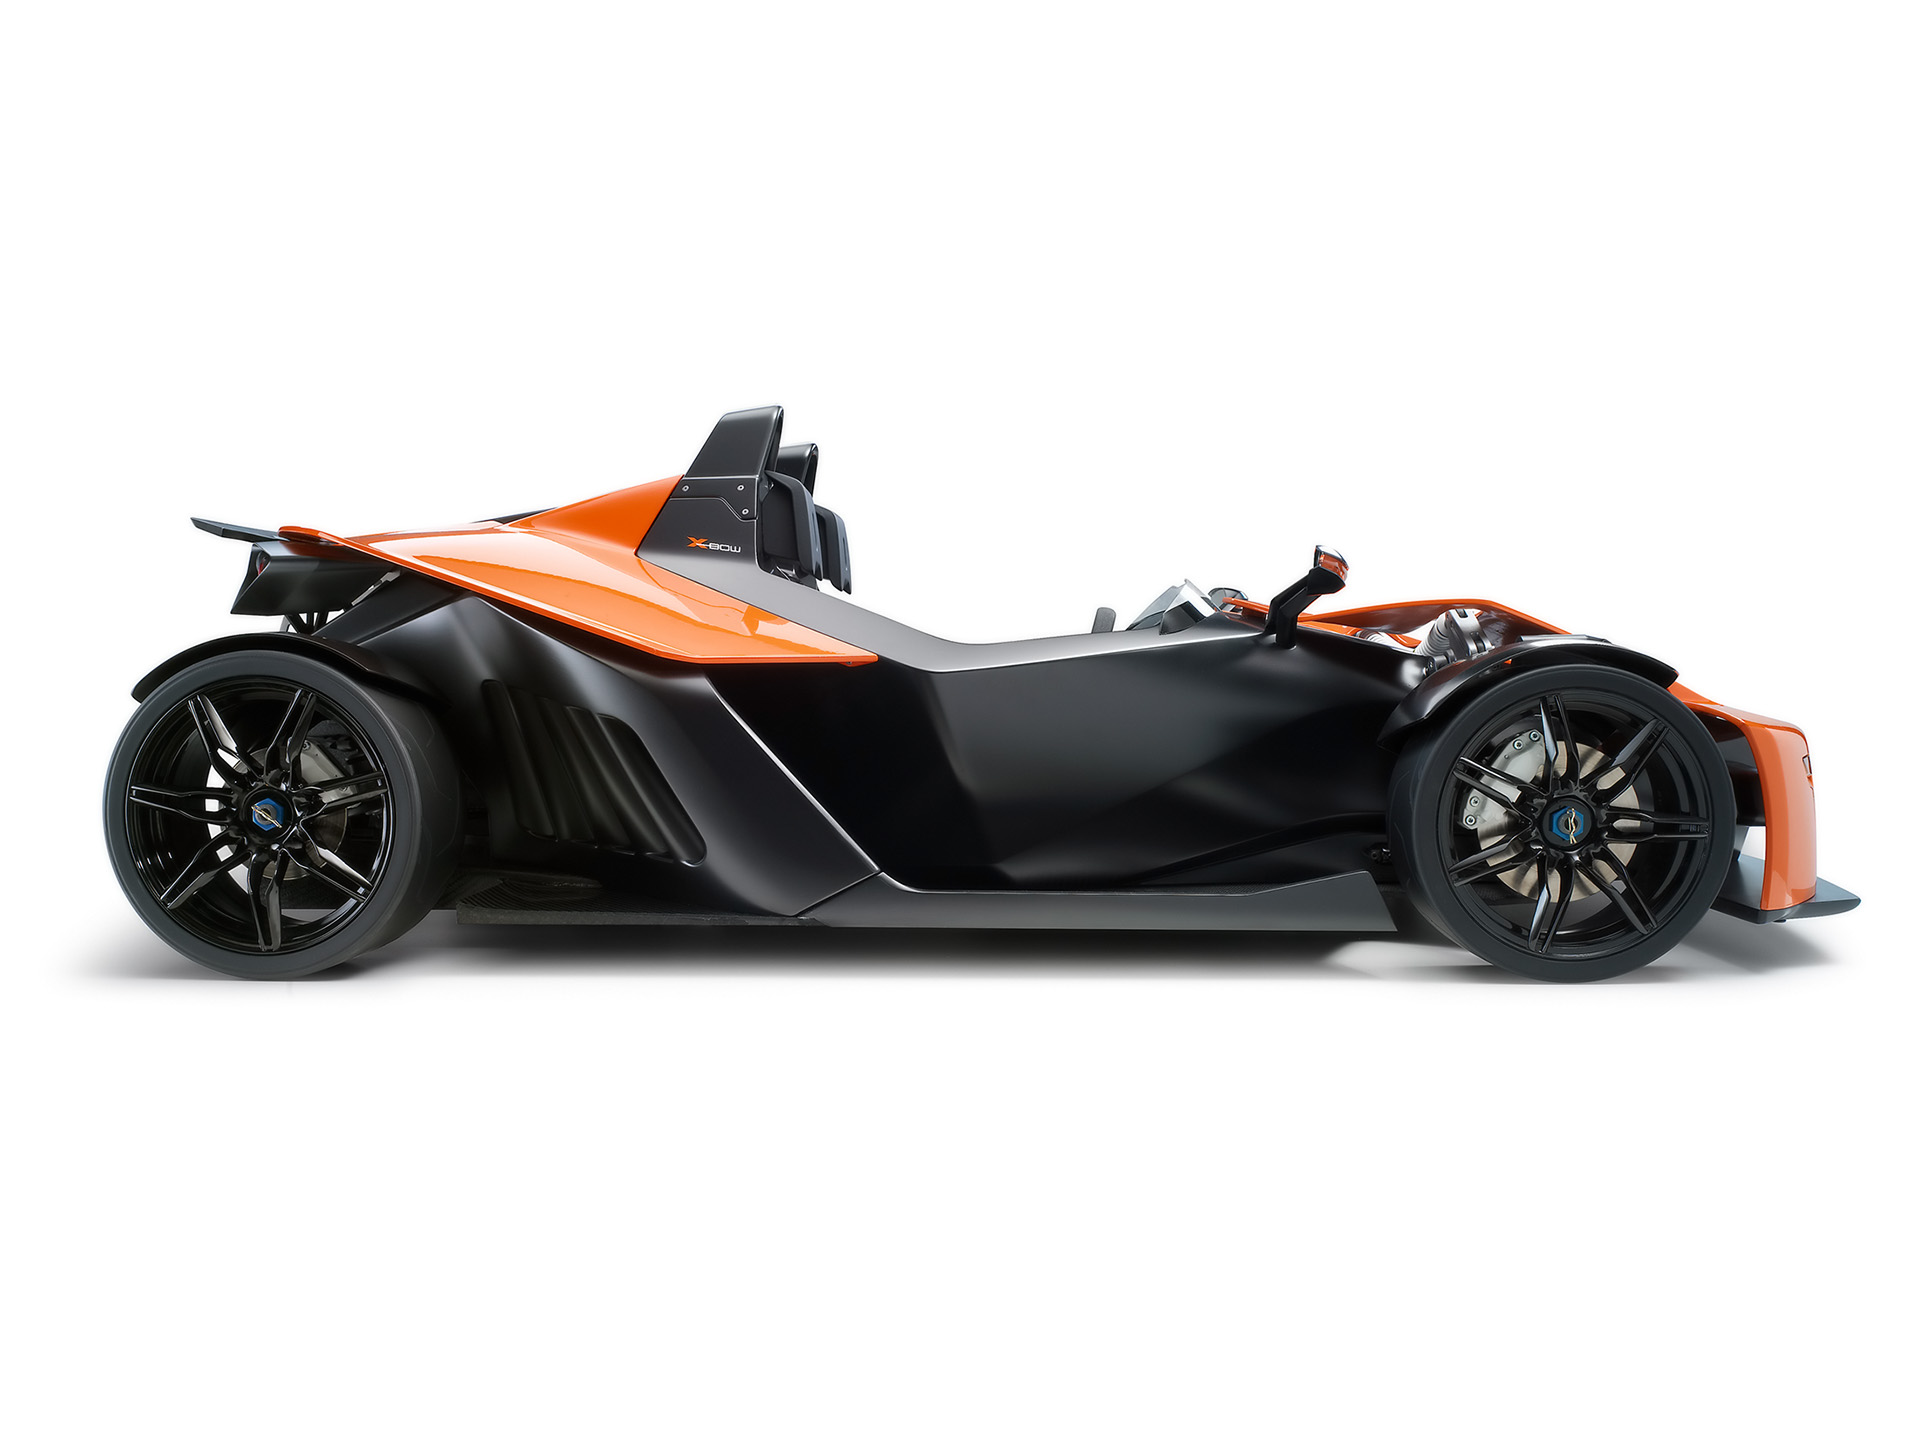 KTM X Bow Side View